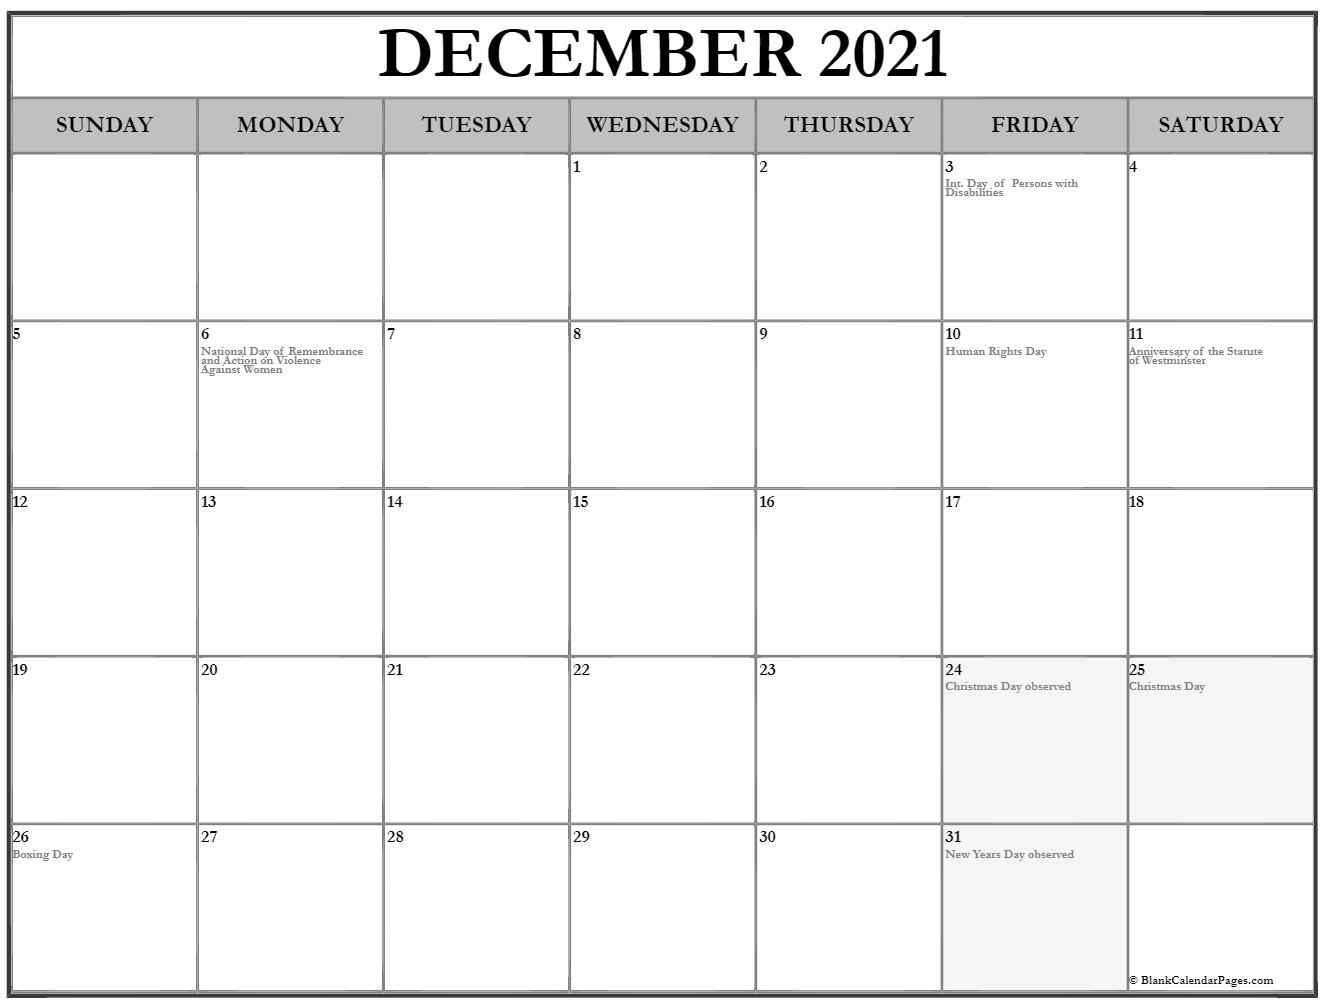 Month of December 2020 holidays Canada